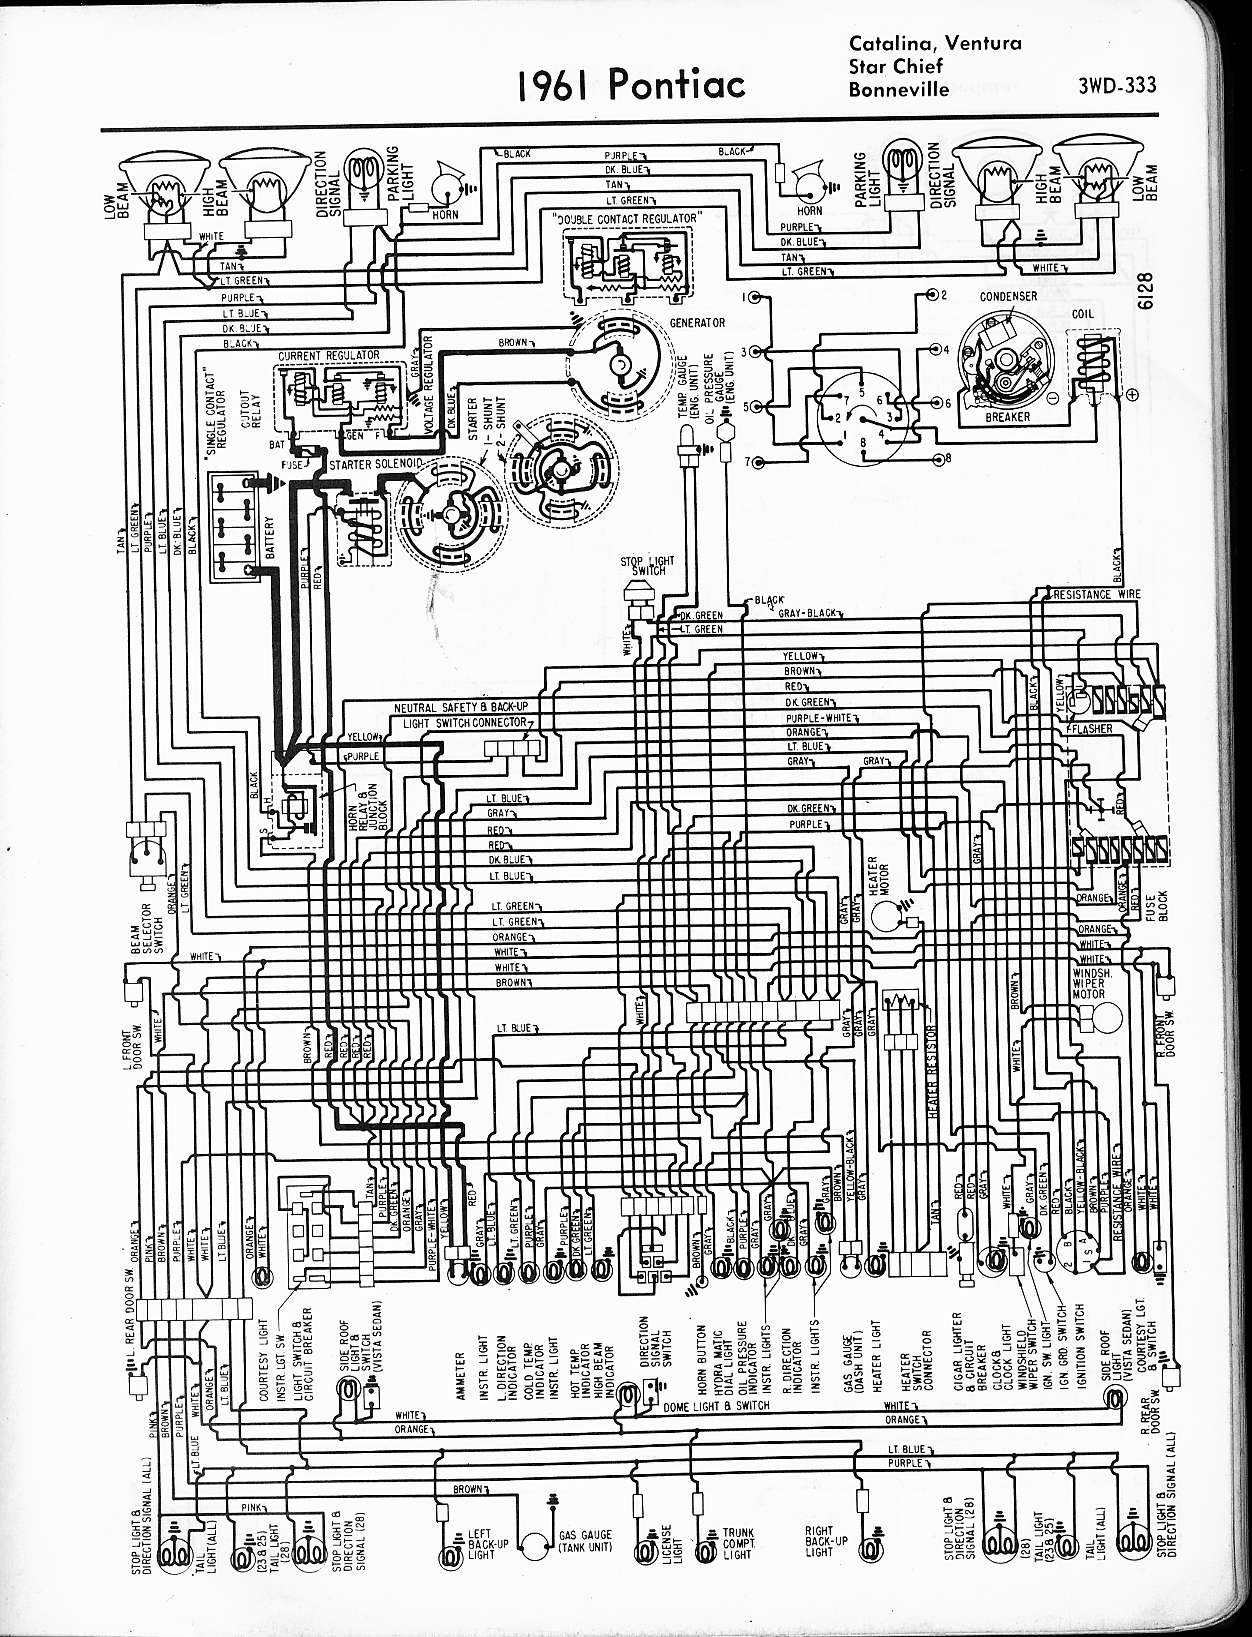 1972 Pontiac Wiring Diagram Guide And Troubleshooting Of 1964 Grand Prix Diagrams For 1961 Third Level Rh 15 16 14 Jacobwinterstein Com 1969 Firebird